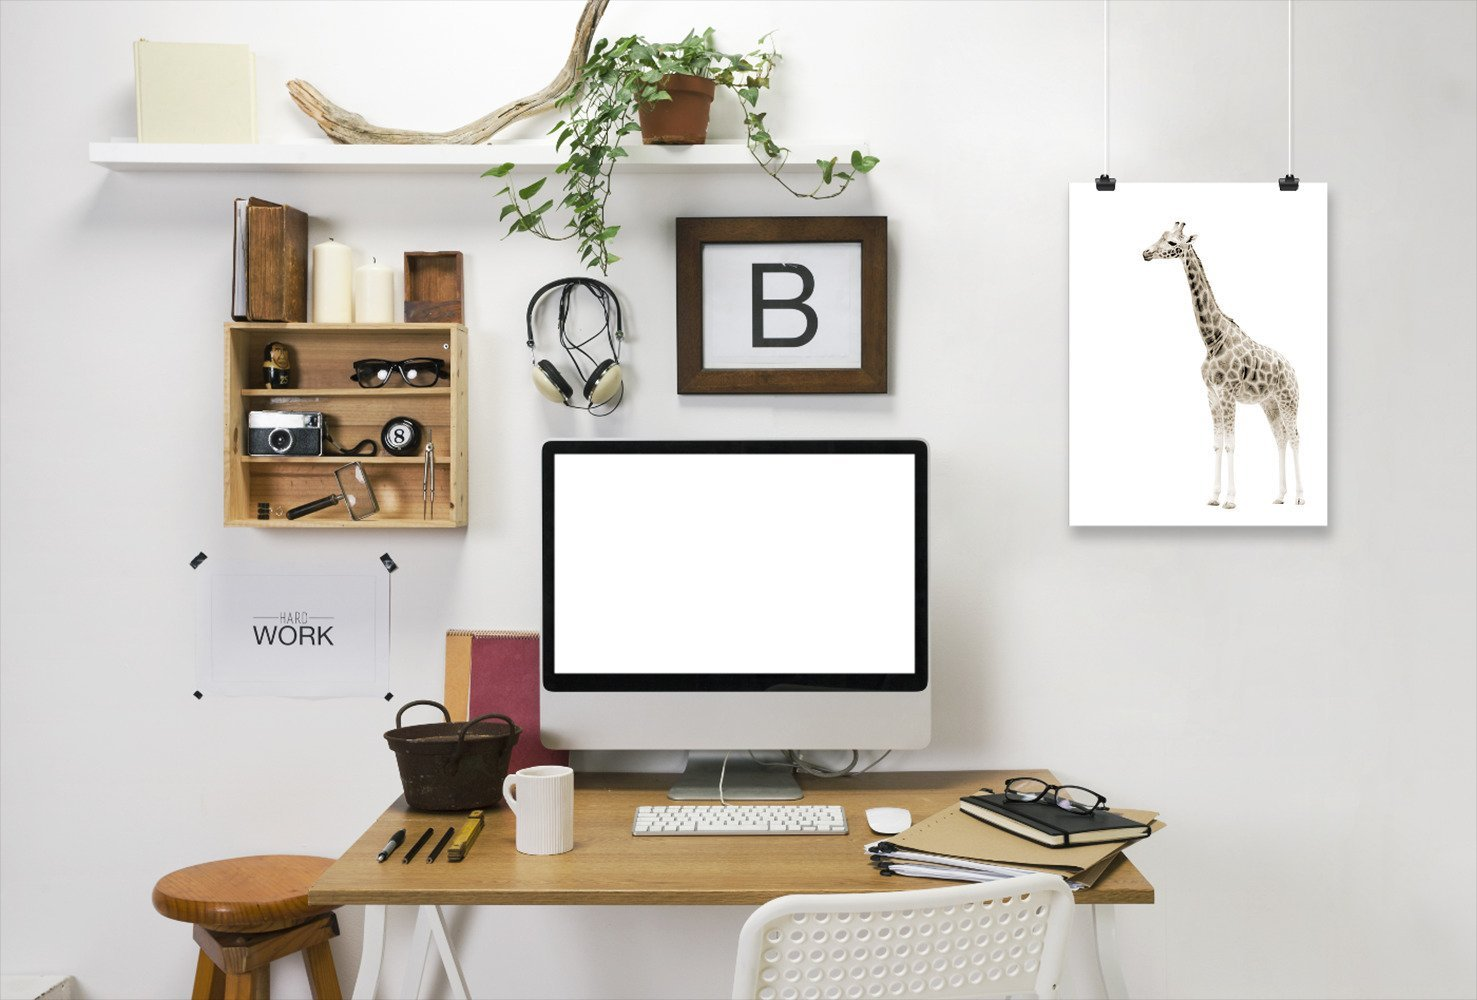 Beige Giraffe 1 by Wall + Wonder - Art Print - Americanflat